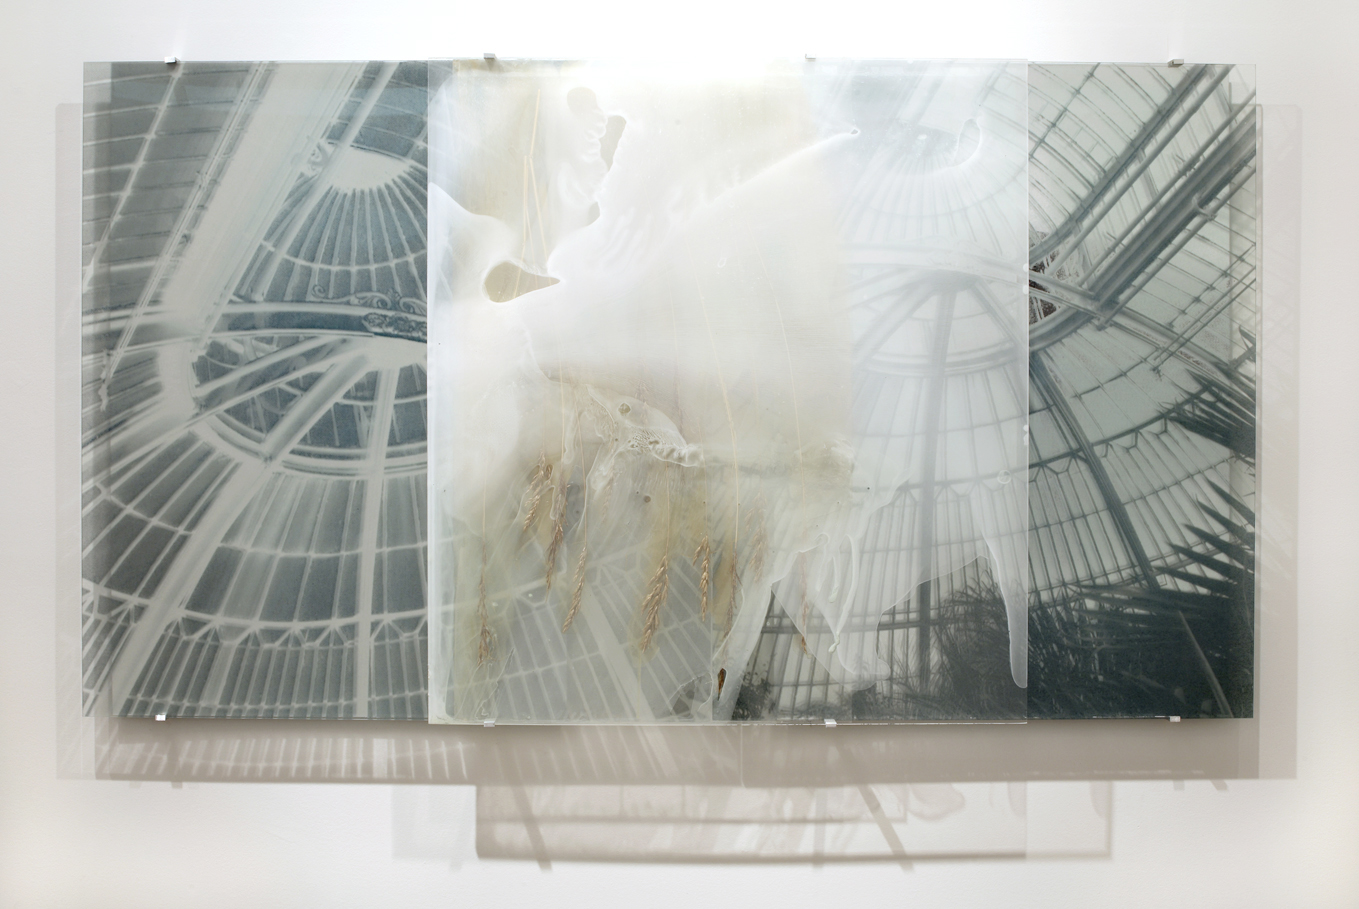 JANET LAURENCE    Botanical Residues (After Nature)    2006   Duraclear on Shinkolite Acrylic,alumin ium, oil pigment   180 x 100